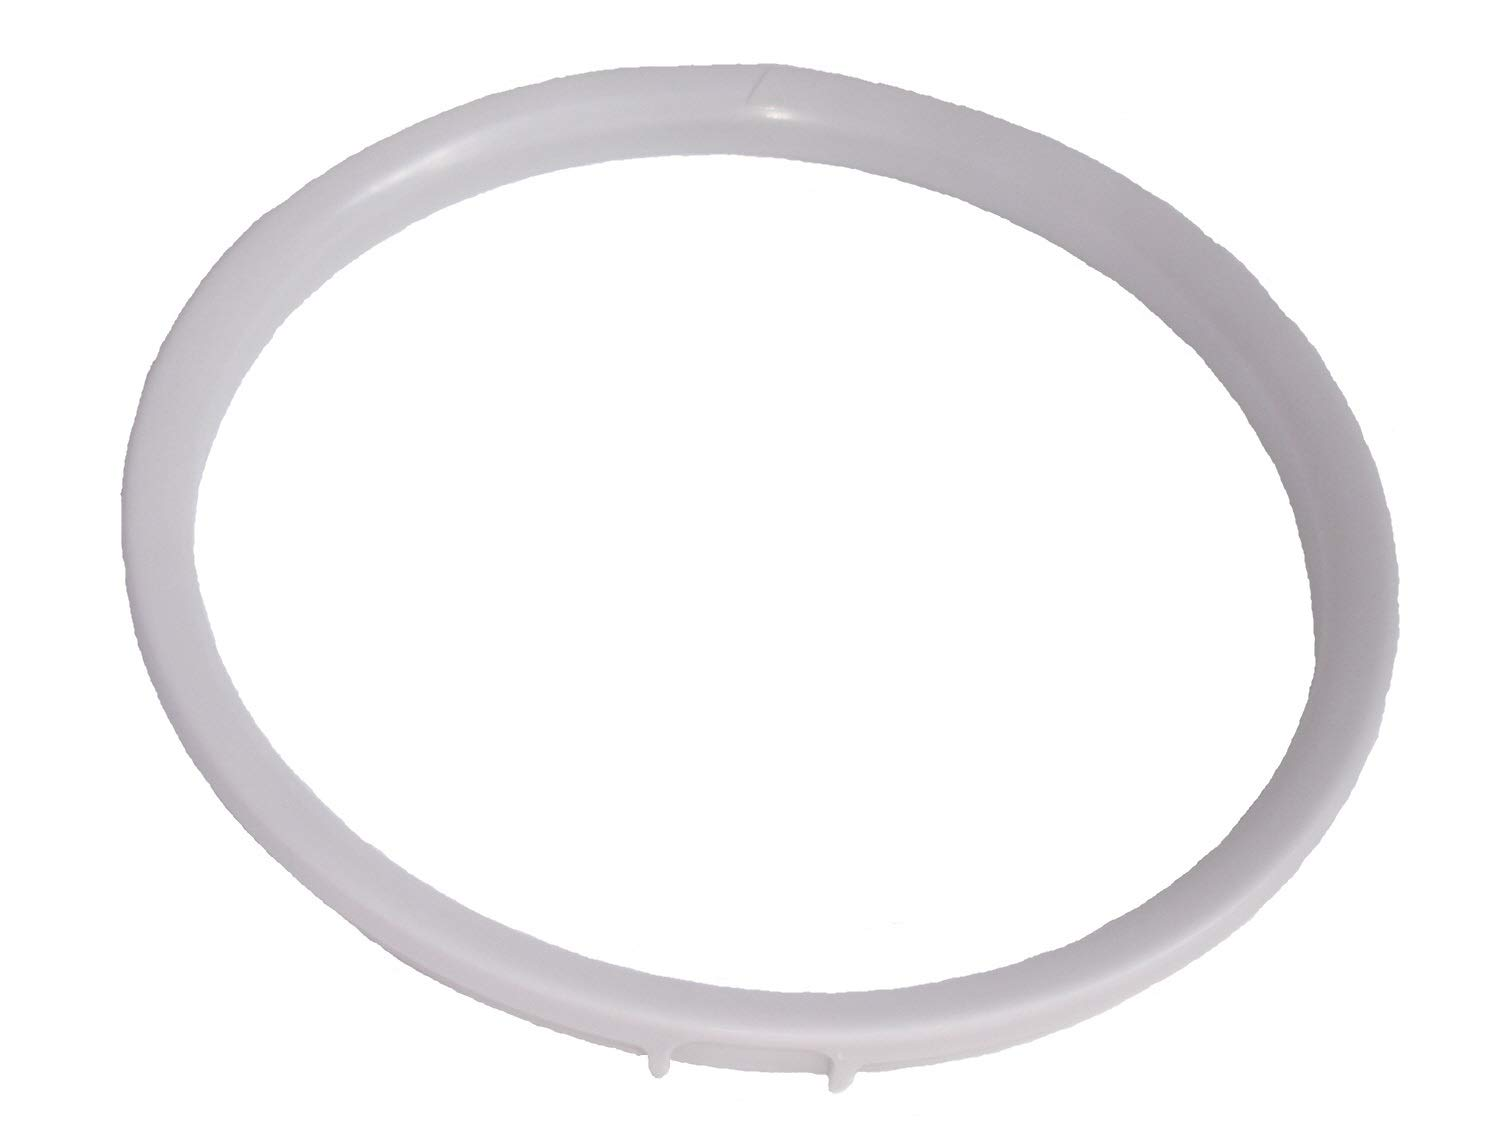 Donvier Premier 2 Pint Ice Cream Maker Cylinder Seal Ring Gasket Repair Part White